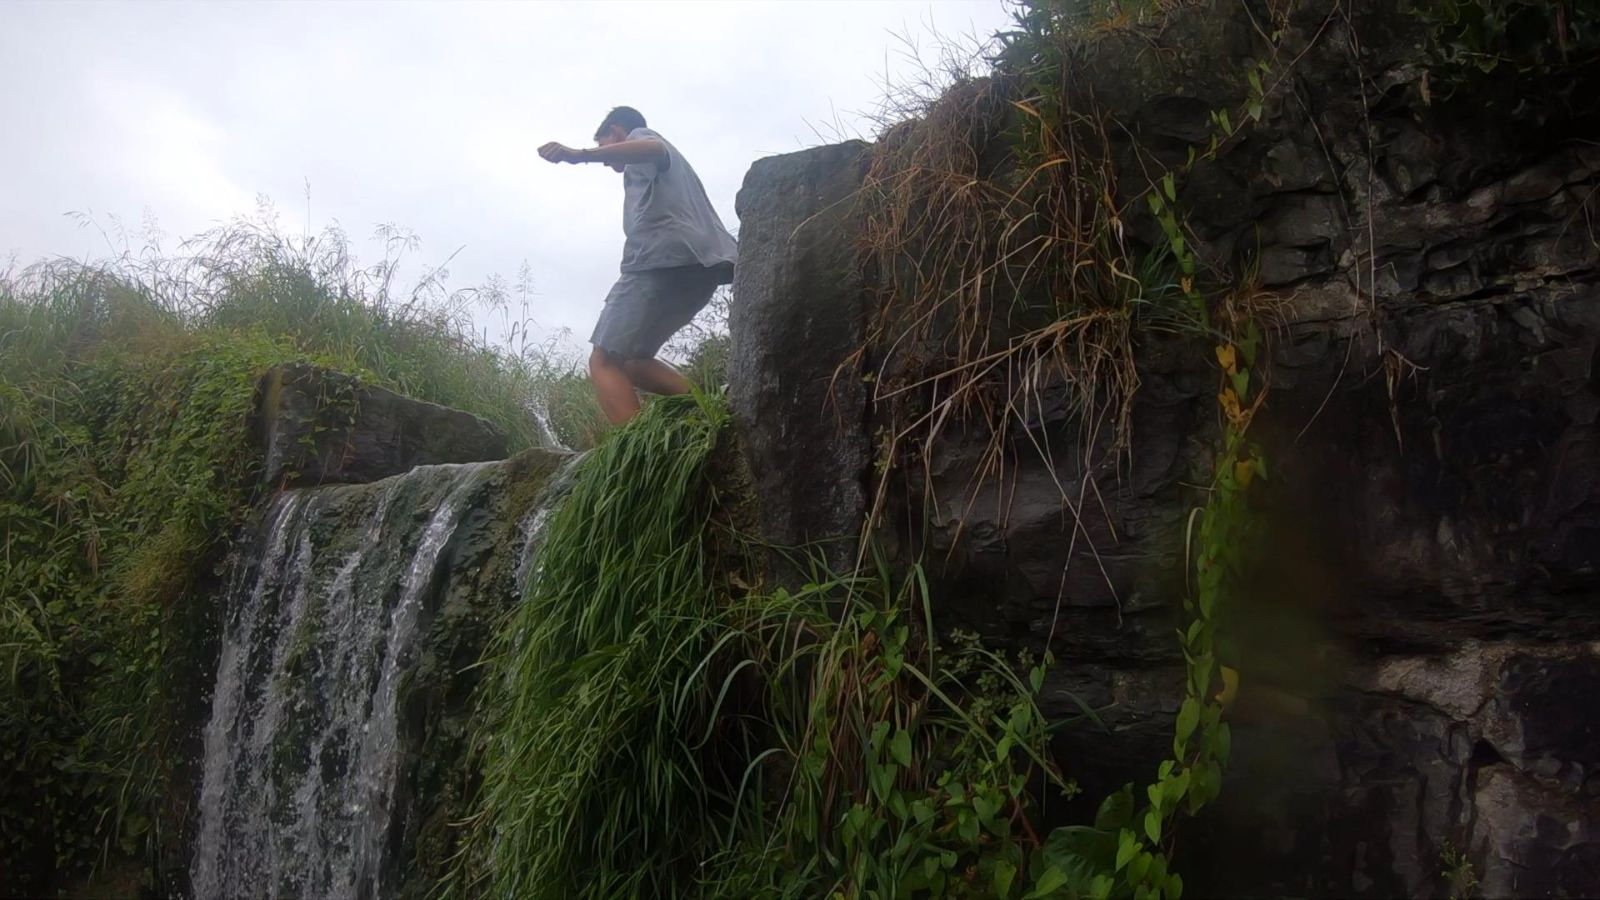 Parkour in the Mendrisiotto.